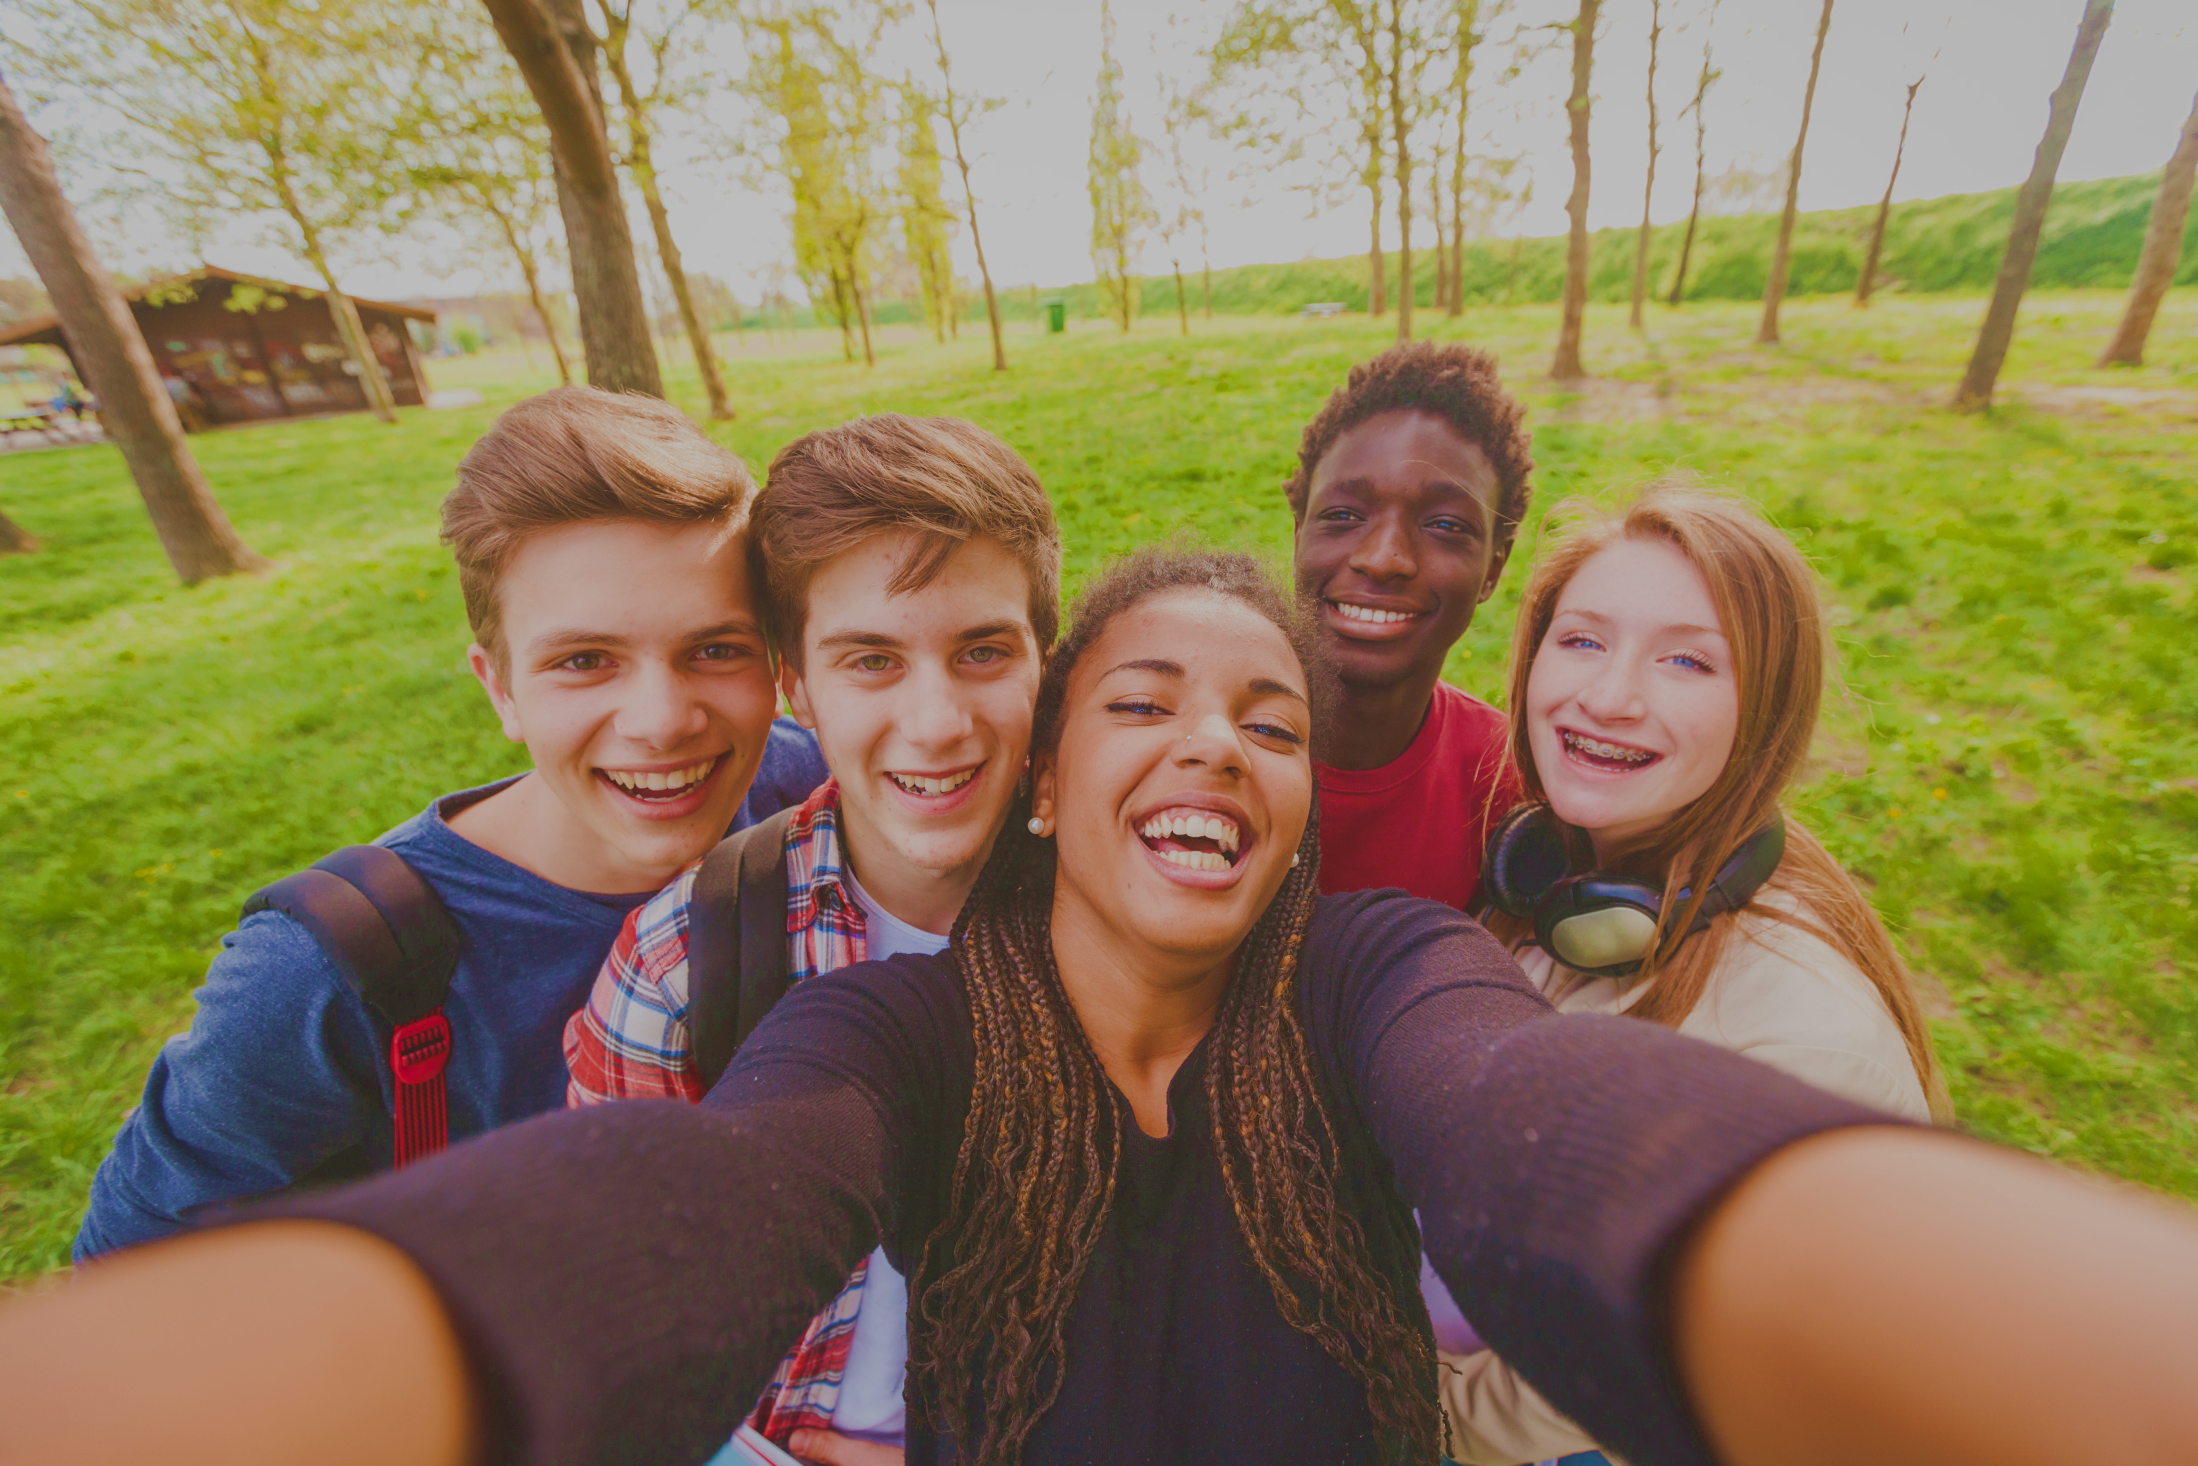 freedom adolescence and teenagers Regarding freedom of adolescents (12-18 years) among their parents and its relationship with the socio- demographic variables method: an exploratory research design was used for the study and a total of 150 parents of adolescents.